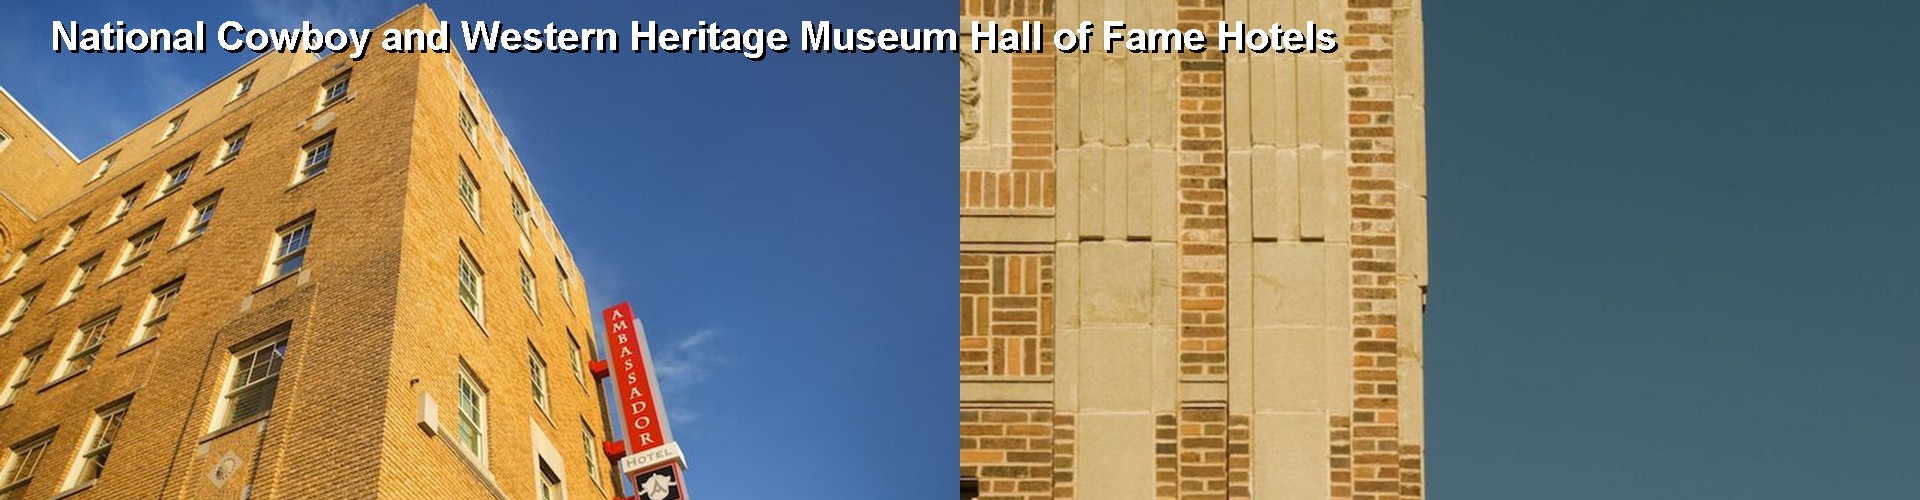 5 Best Hotels near National Cowboy and Western Heritage Museum Hall of Fame